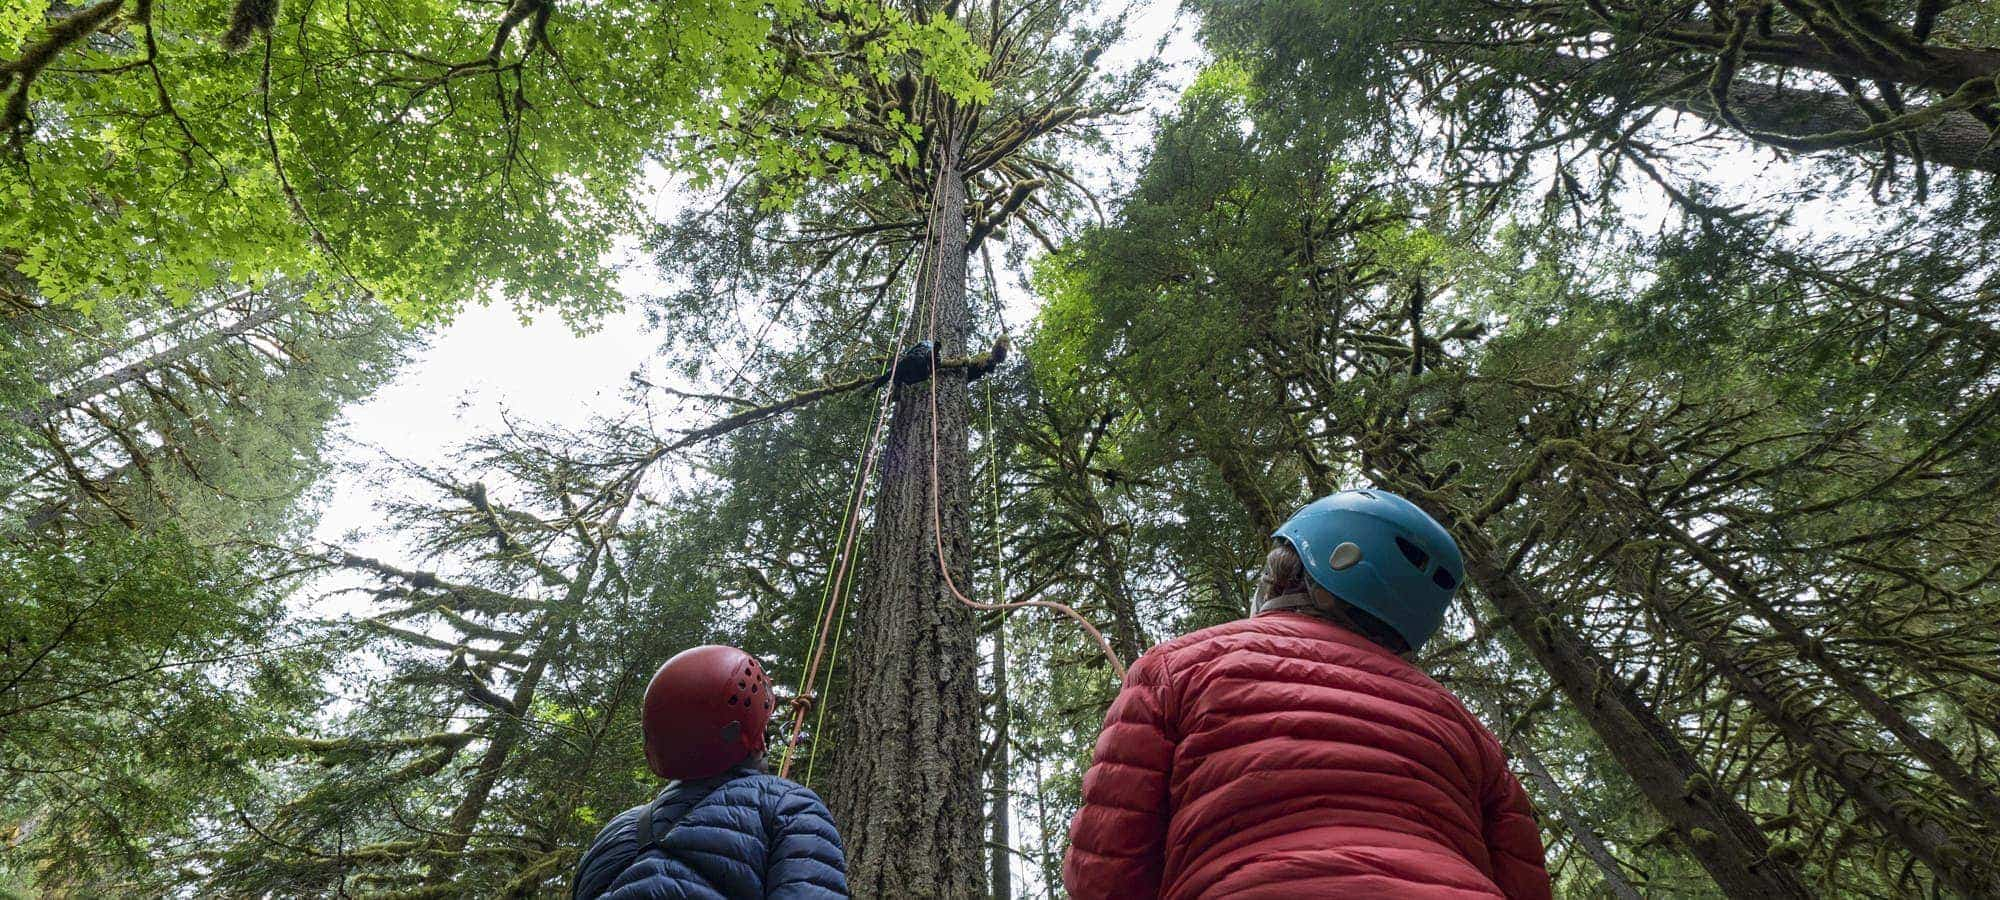 Children look up into the trees at climber